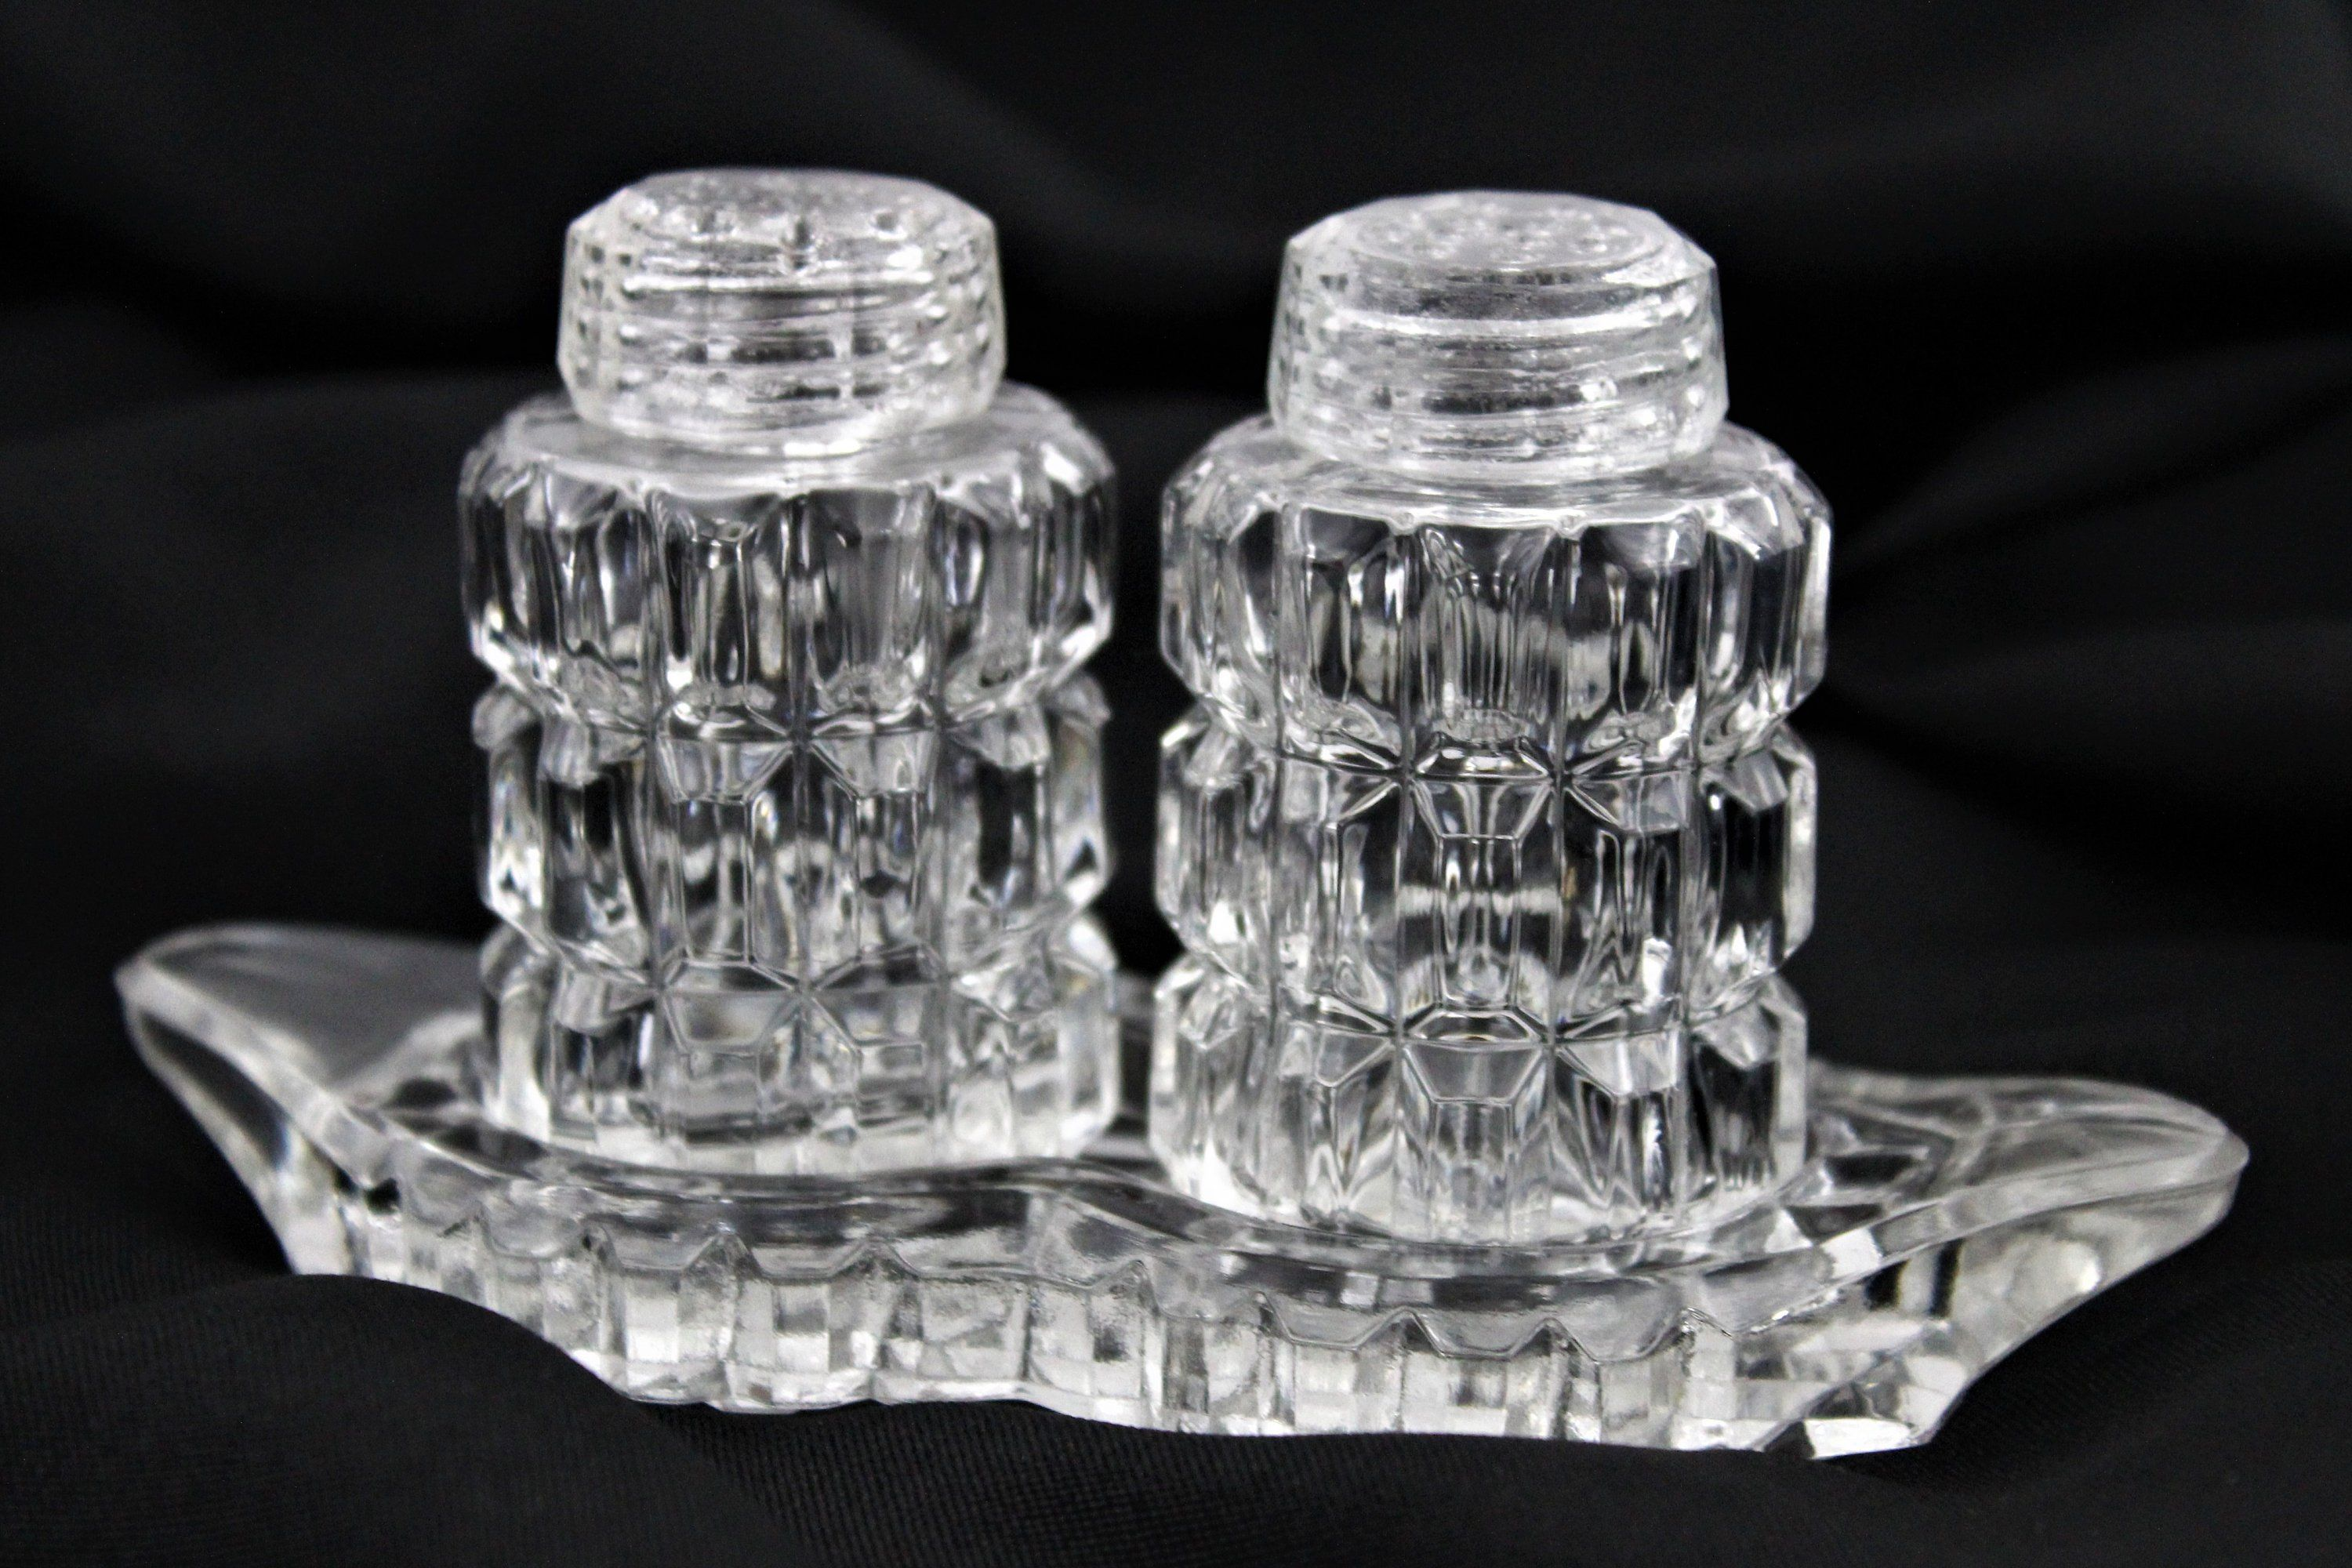 Elegant Glass Salt and Pepper Shakers, Matching Glass Tray